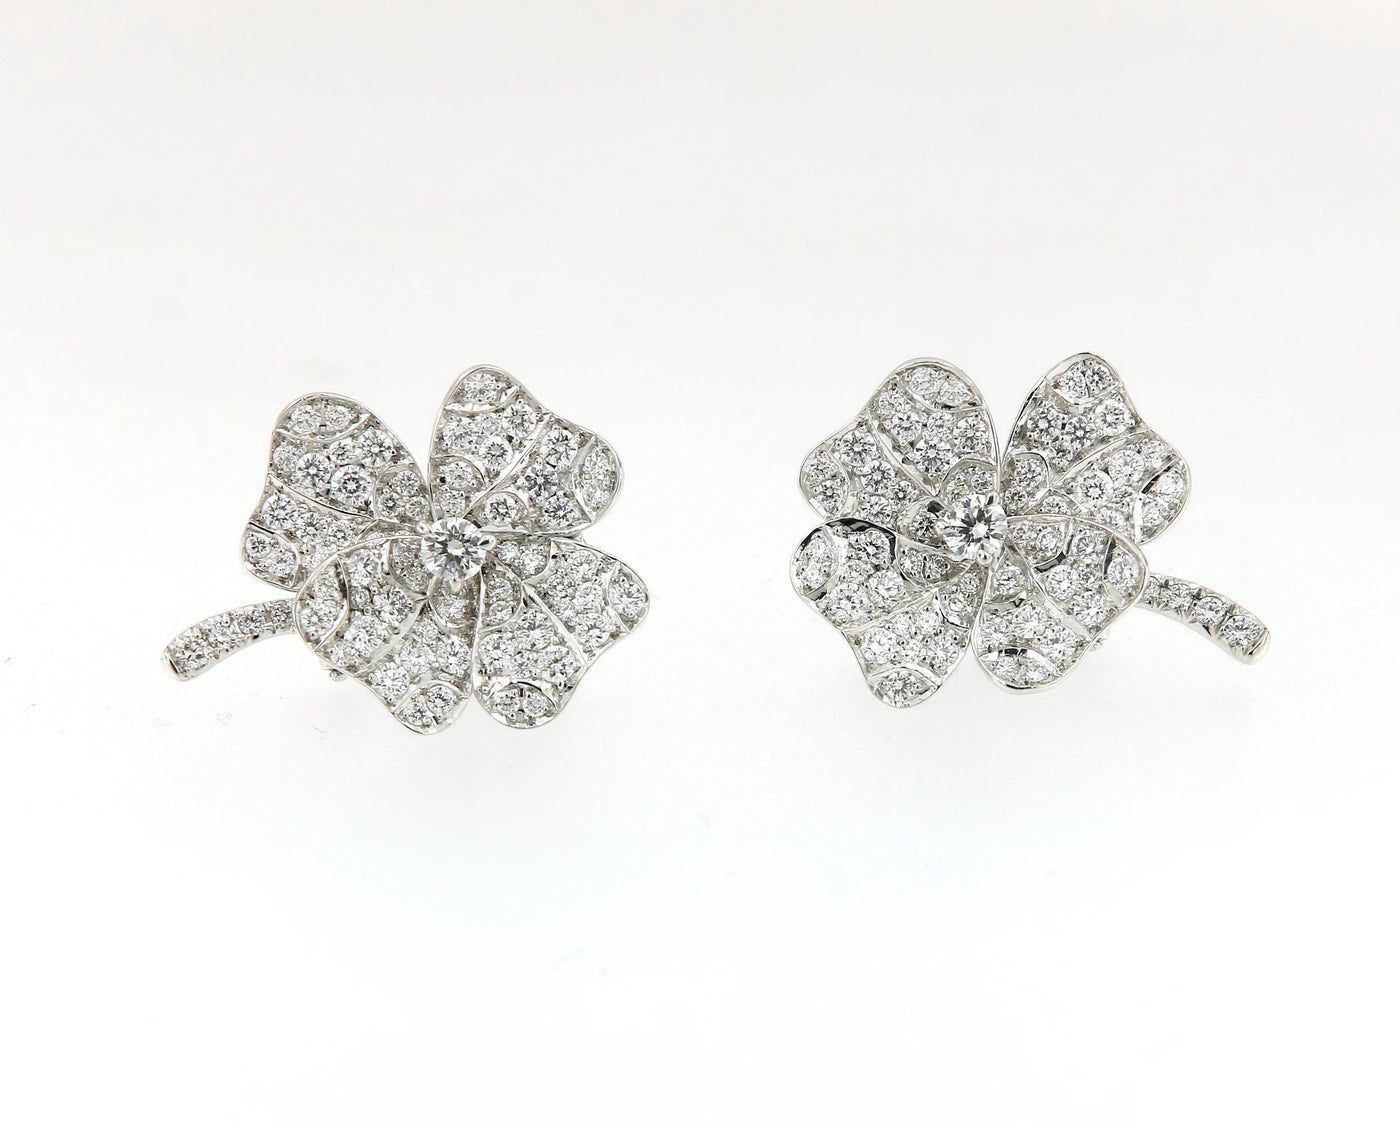 Earrings White Gold with White Diamonds (small) (BILD)